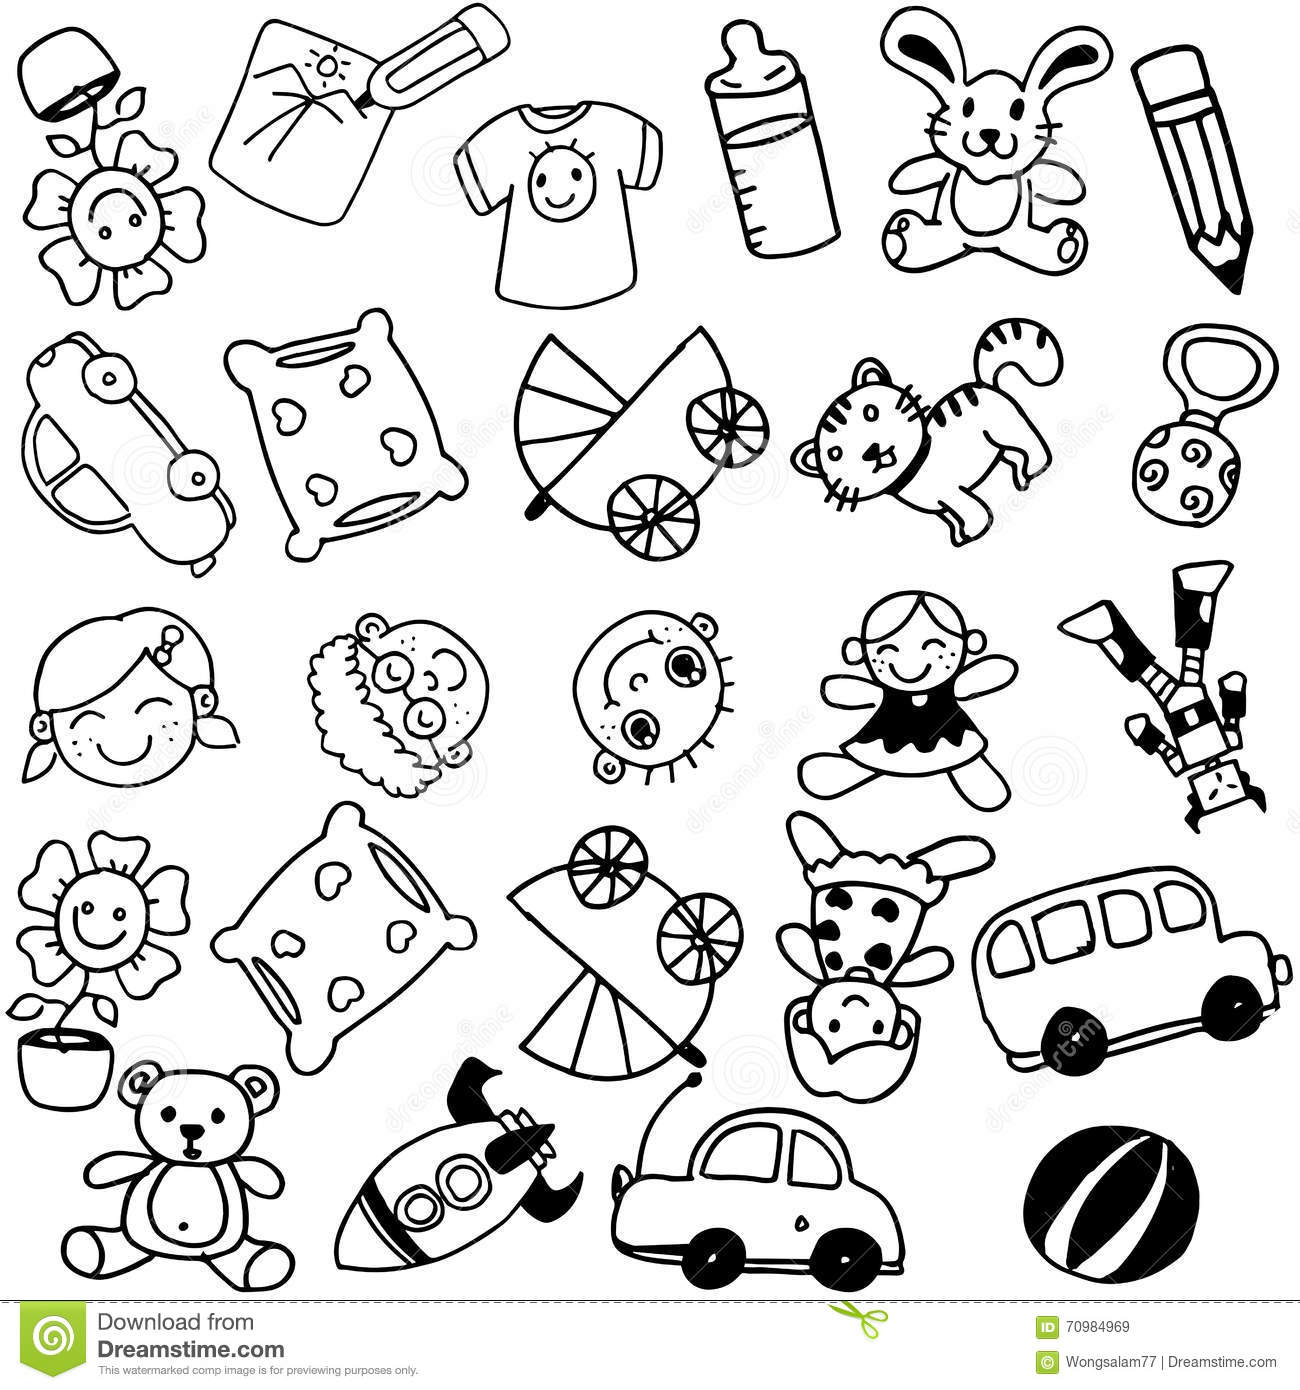 Toy Doodle Art For Kids Stock Vector Illustration Of